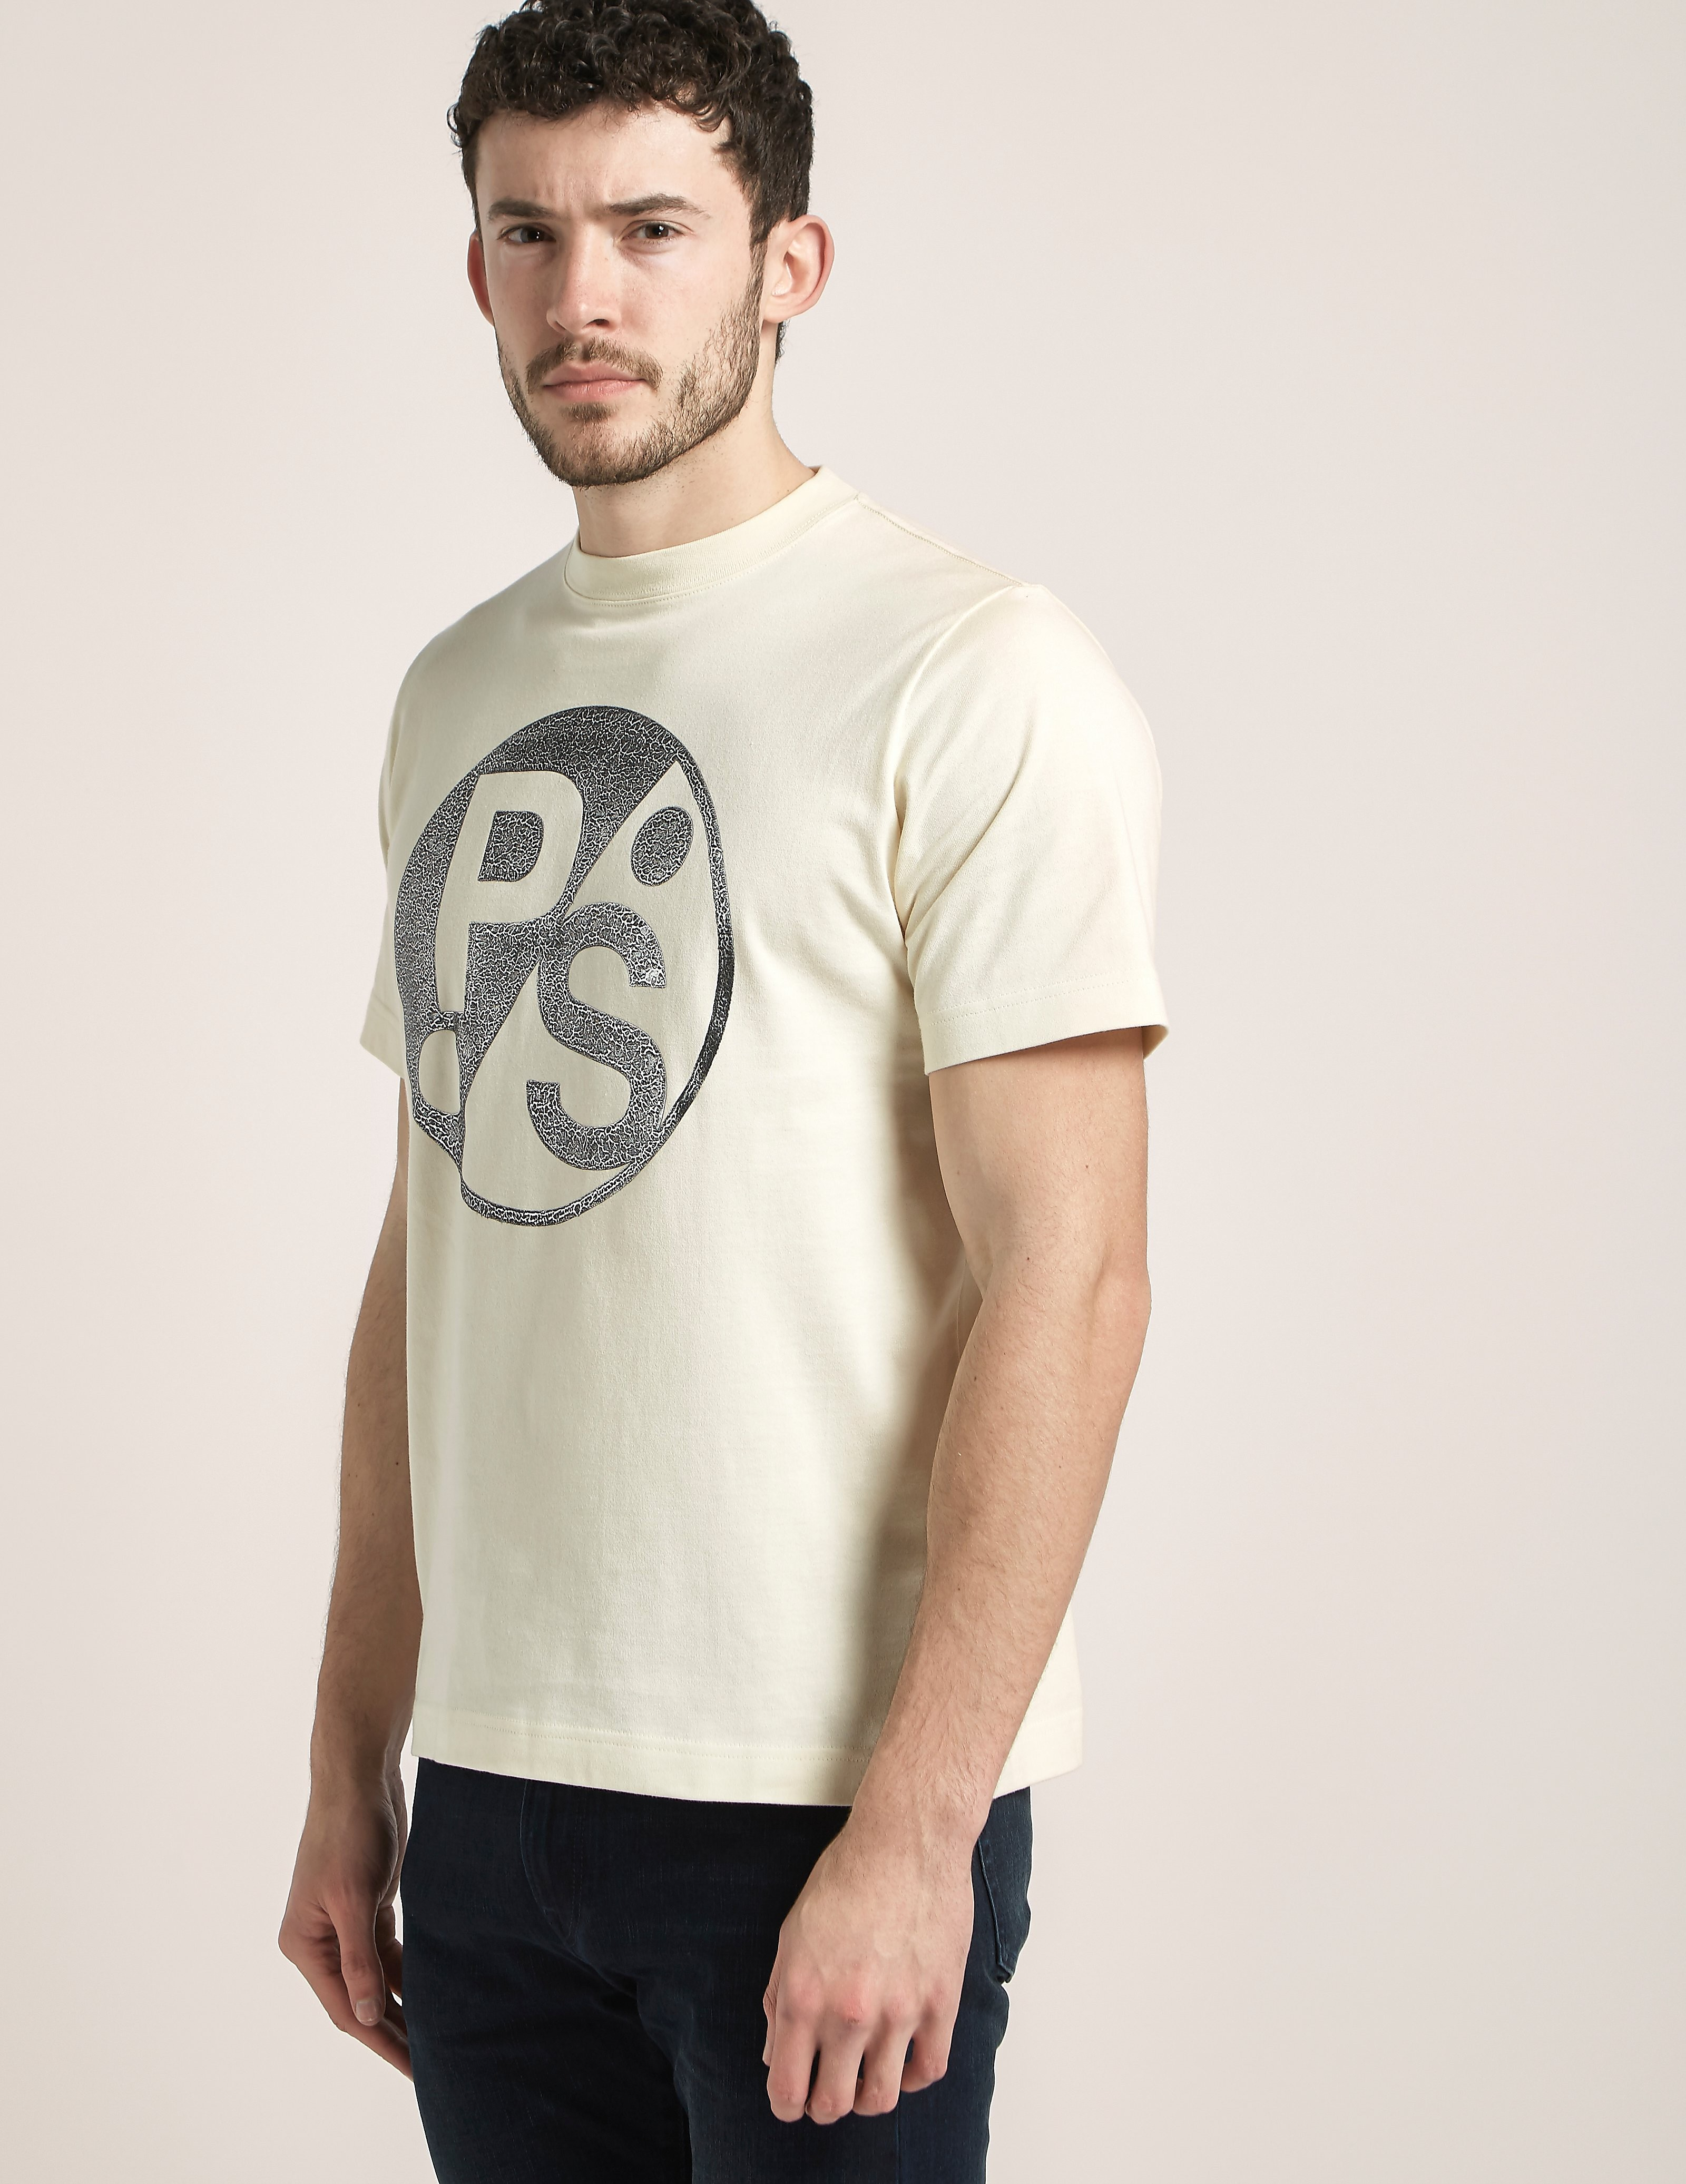 Paul Smith Foil Print T-Shirt